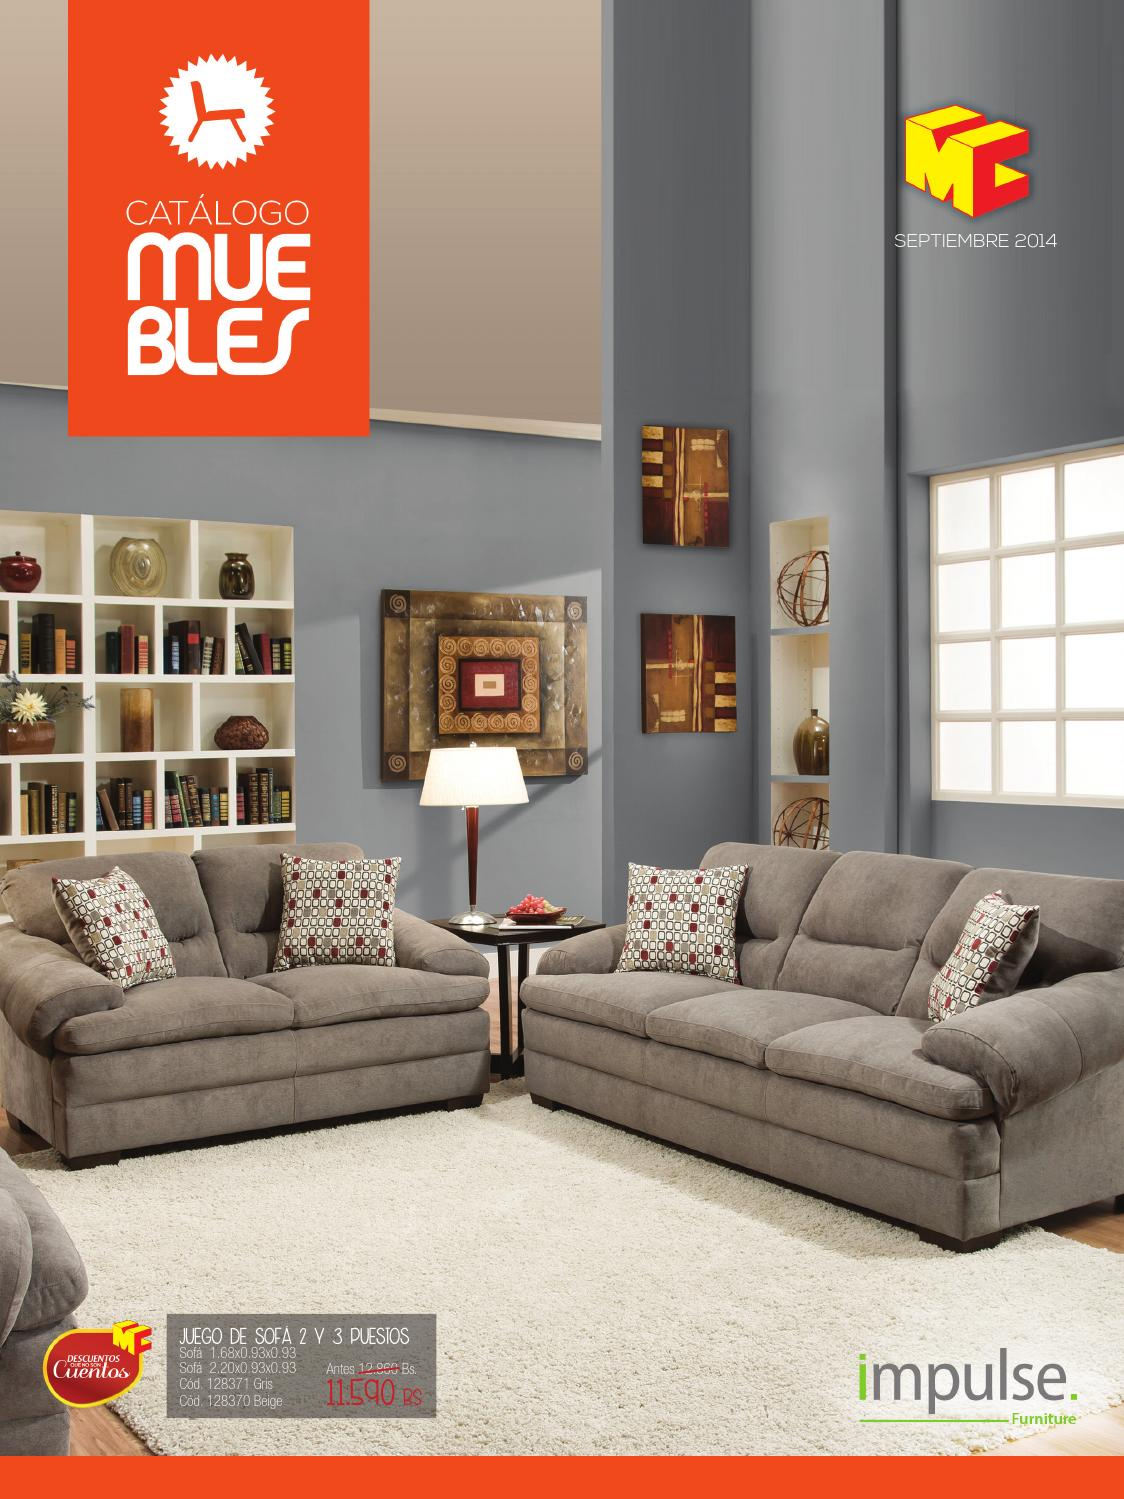 Catalogo muebles by multicenter bolivia issuu - Muebles yecla catalogo ...